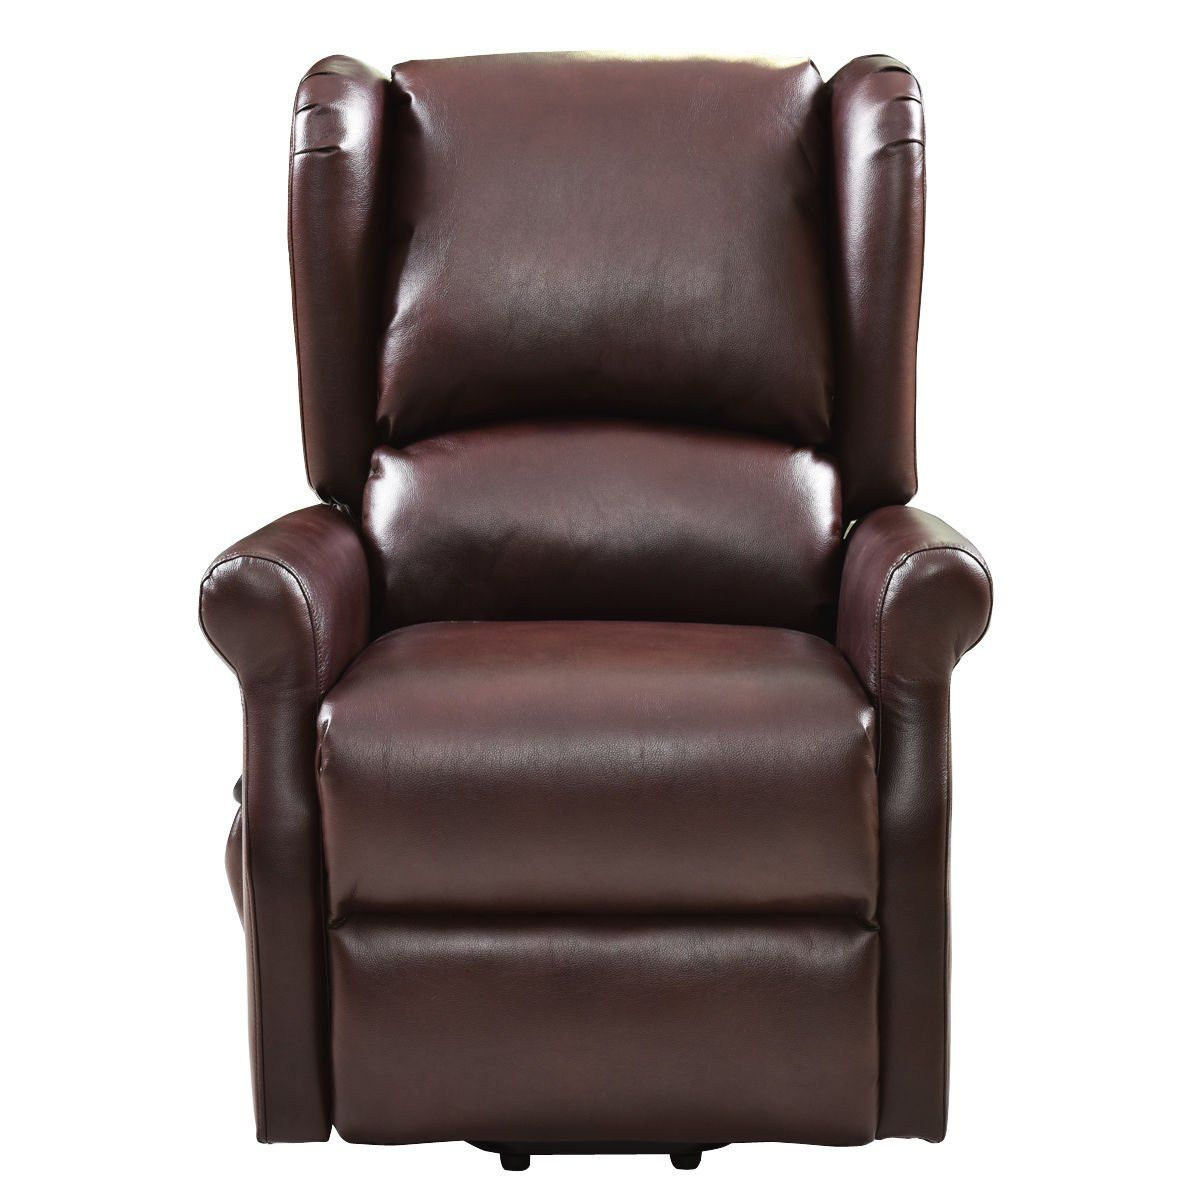 Brown adjustable position electric lift chair reclining